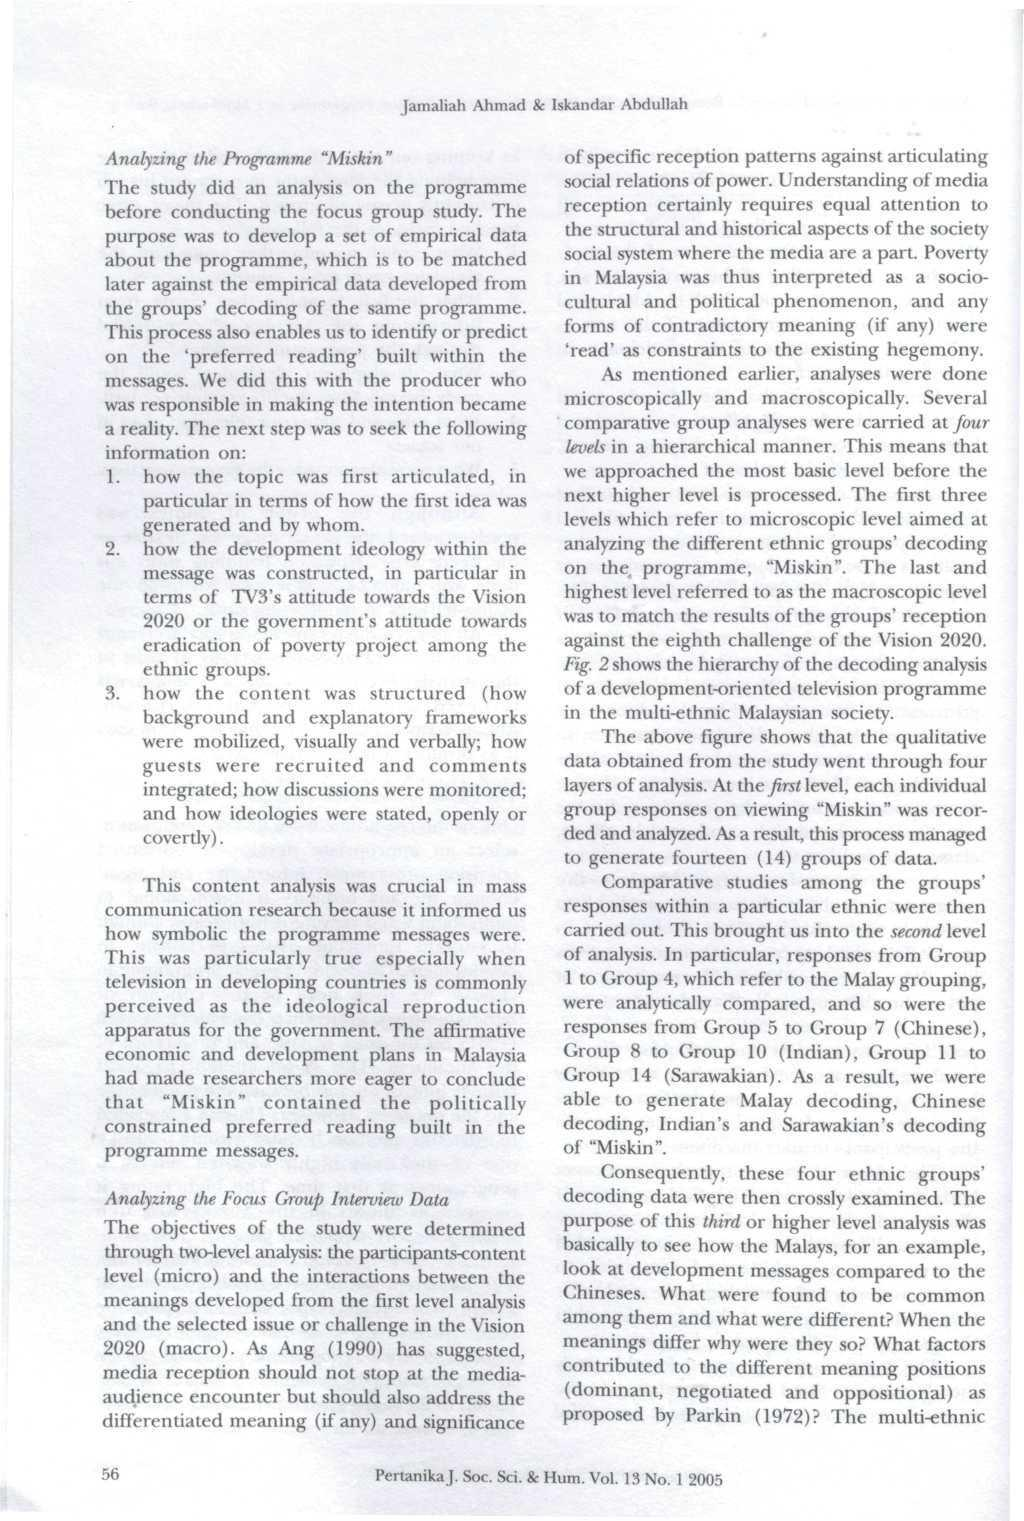 Social Science Humanities Volume 13 No 1 March 2005 Pertanika